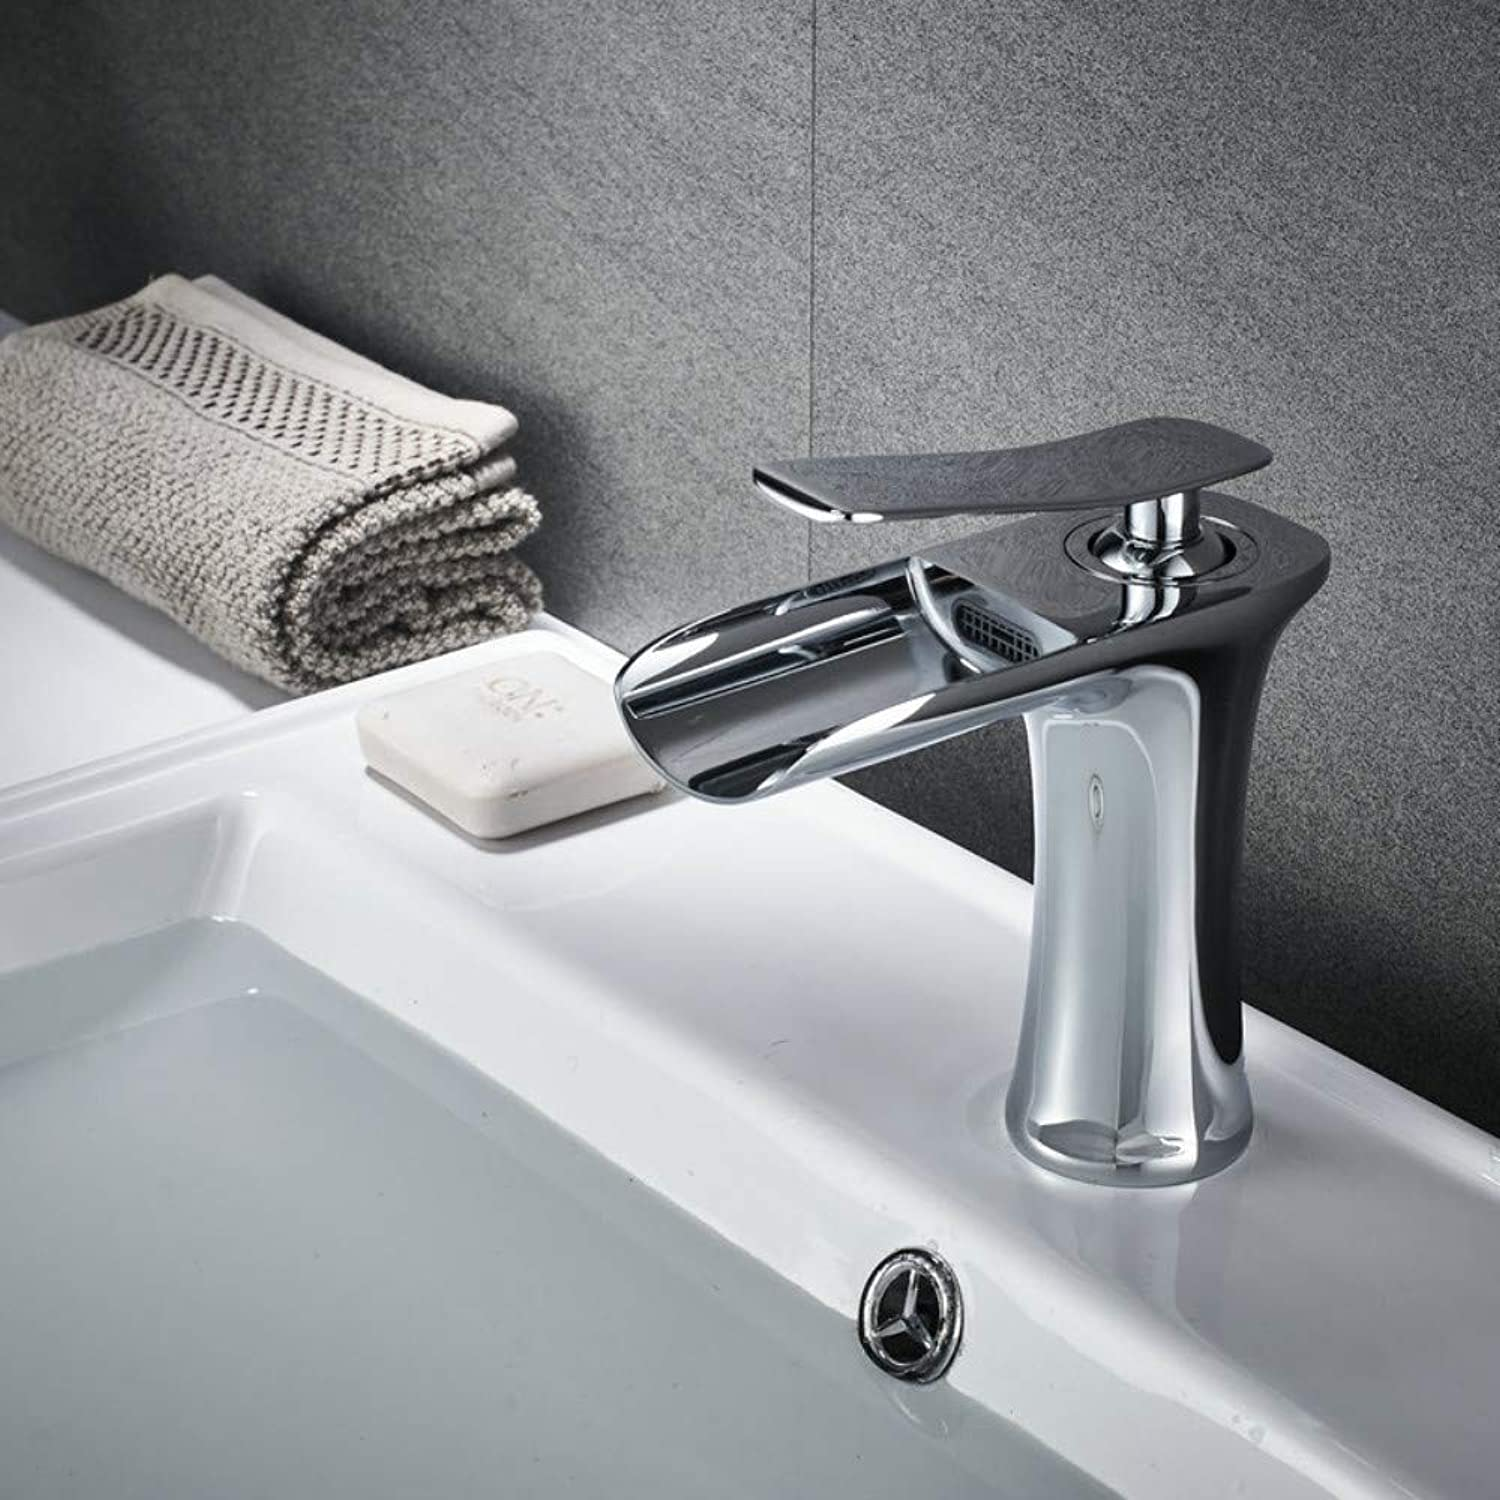 Bathroom Taps Waterfall Basin Faucet Hot and Cold Bathroom Above Counter Basin? Bathroom Sink Tap Basin Sink Mixer Tap